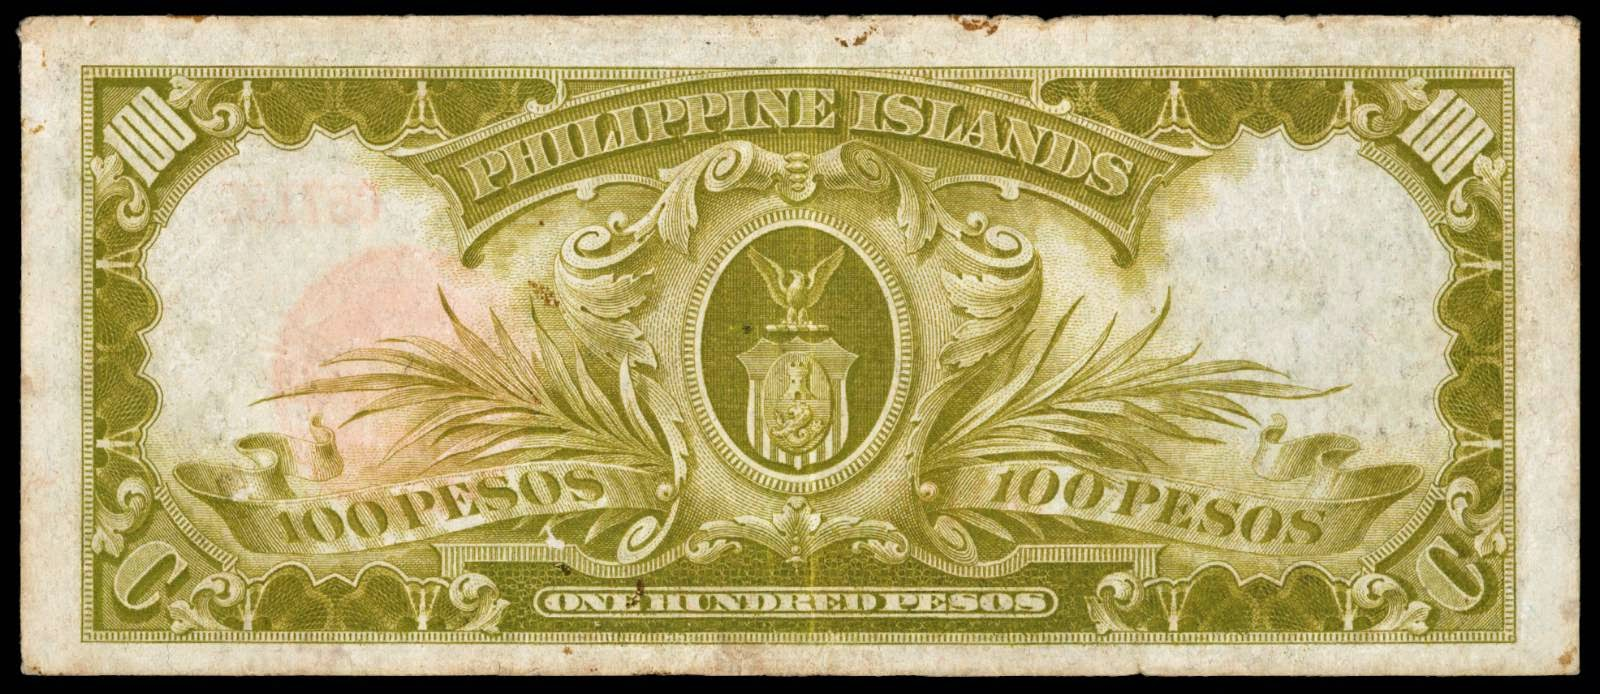 1929 Philippine Islands One Hundred Pesos Treasury Certificate